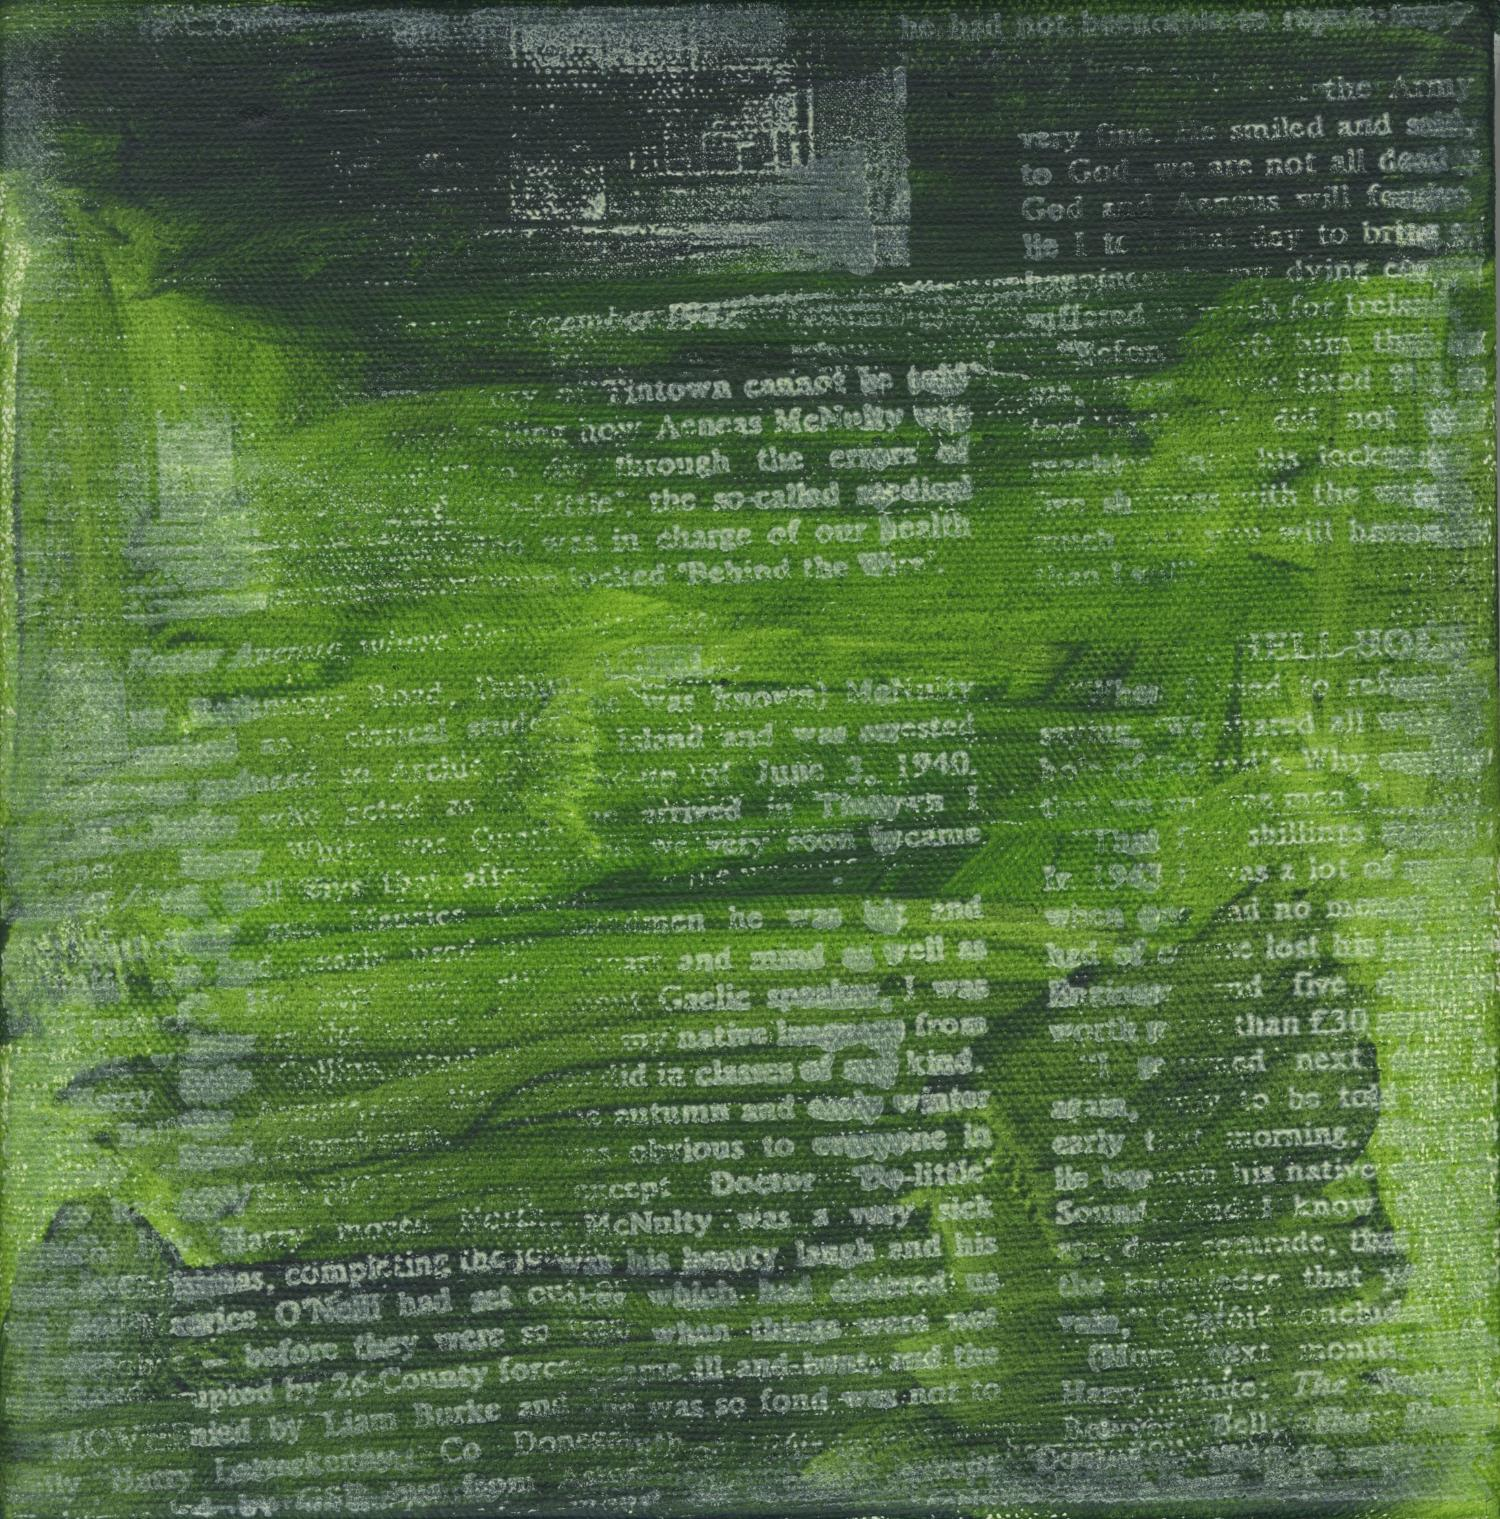 Verdant - Margo Mc Nulty